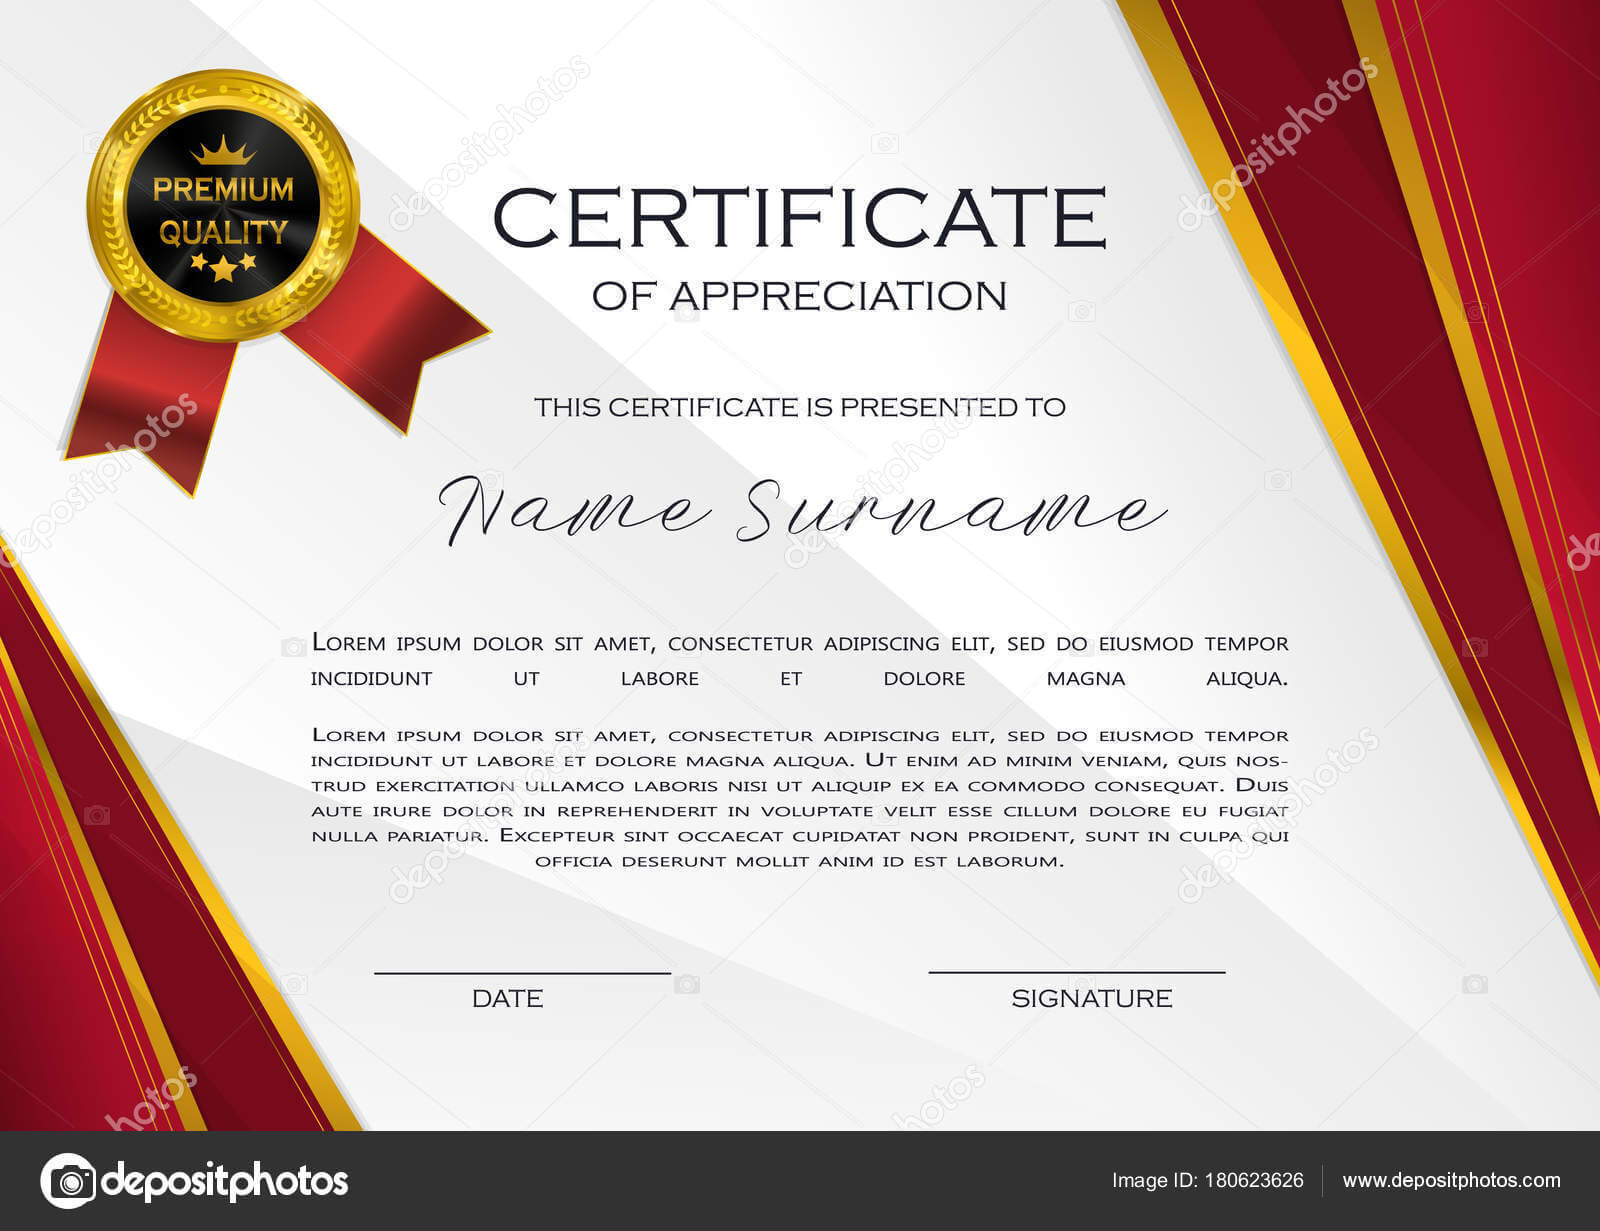 Qualification Certificate Appreciation Design Elegant Luxury with regard to High Resolution Certificate Template